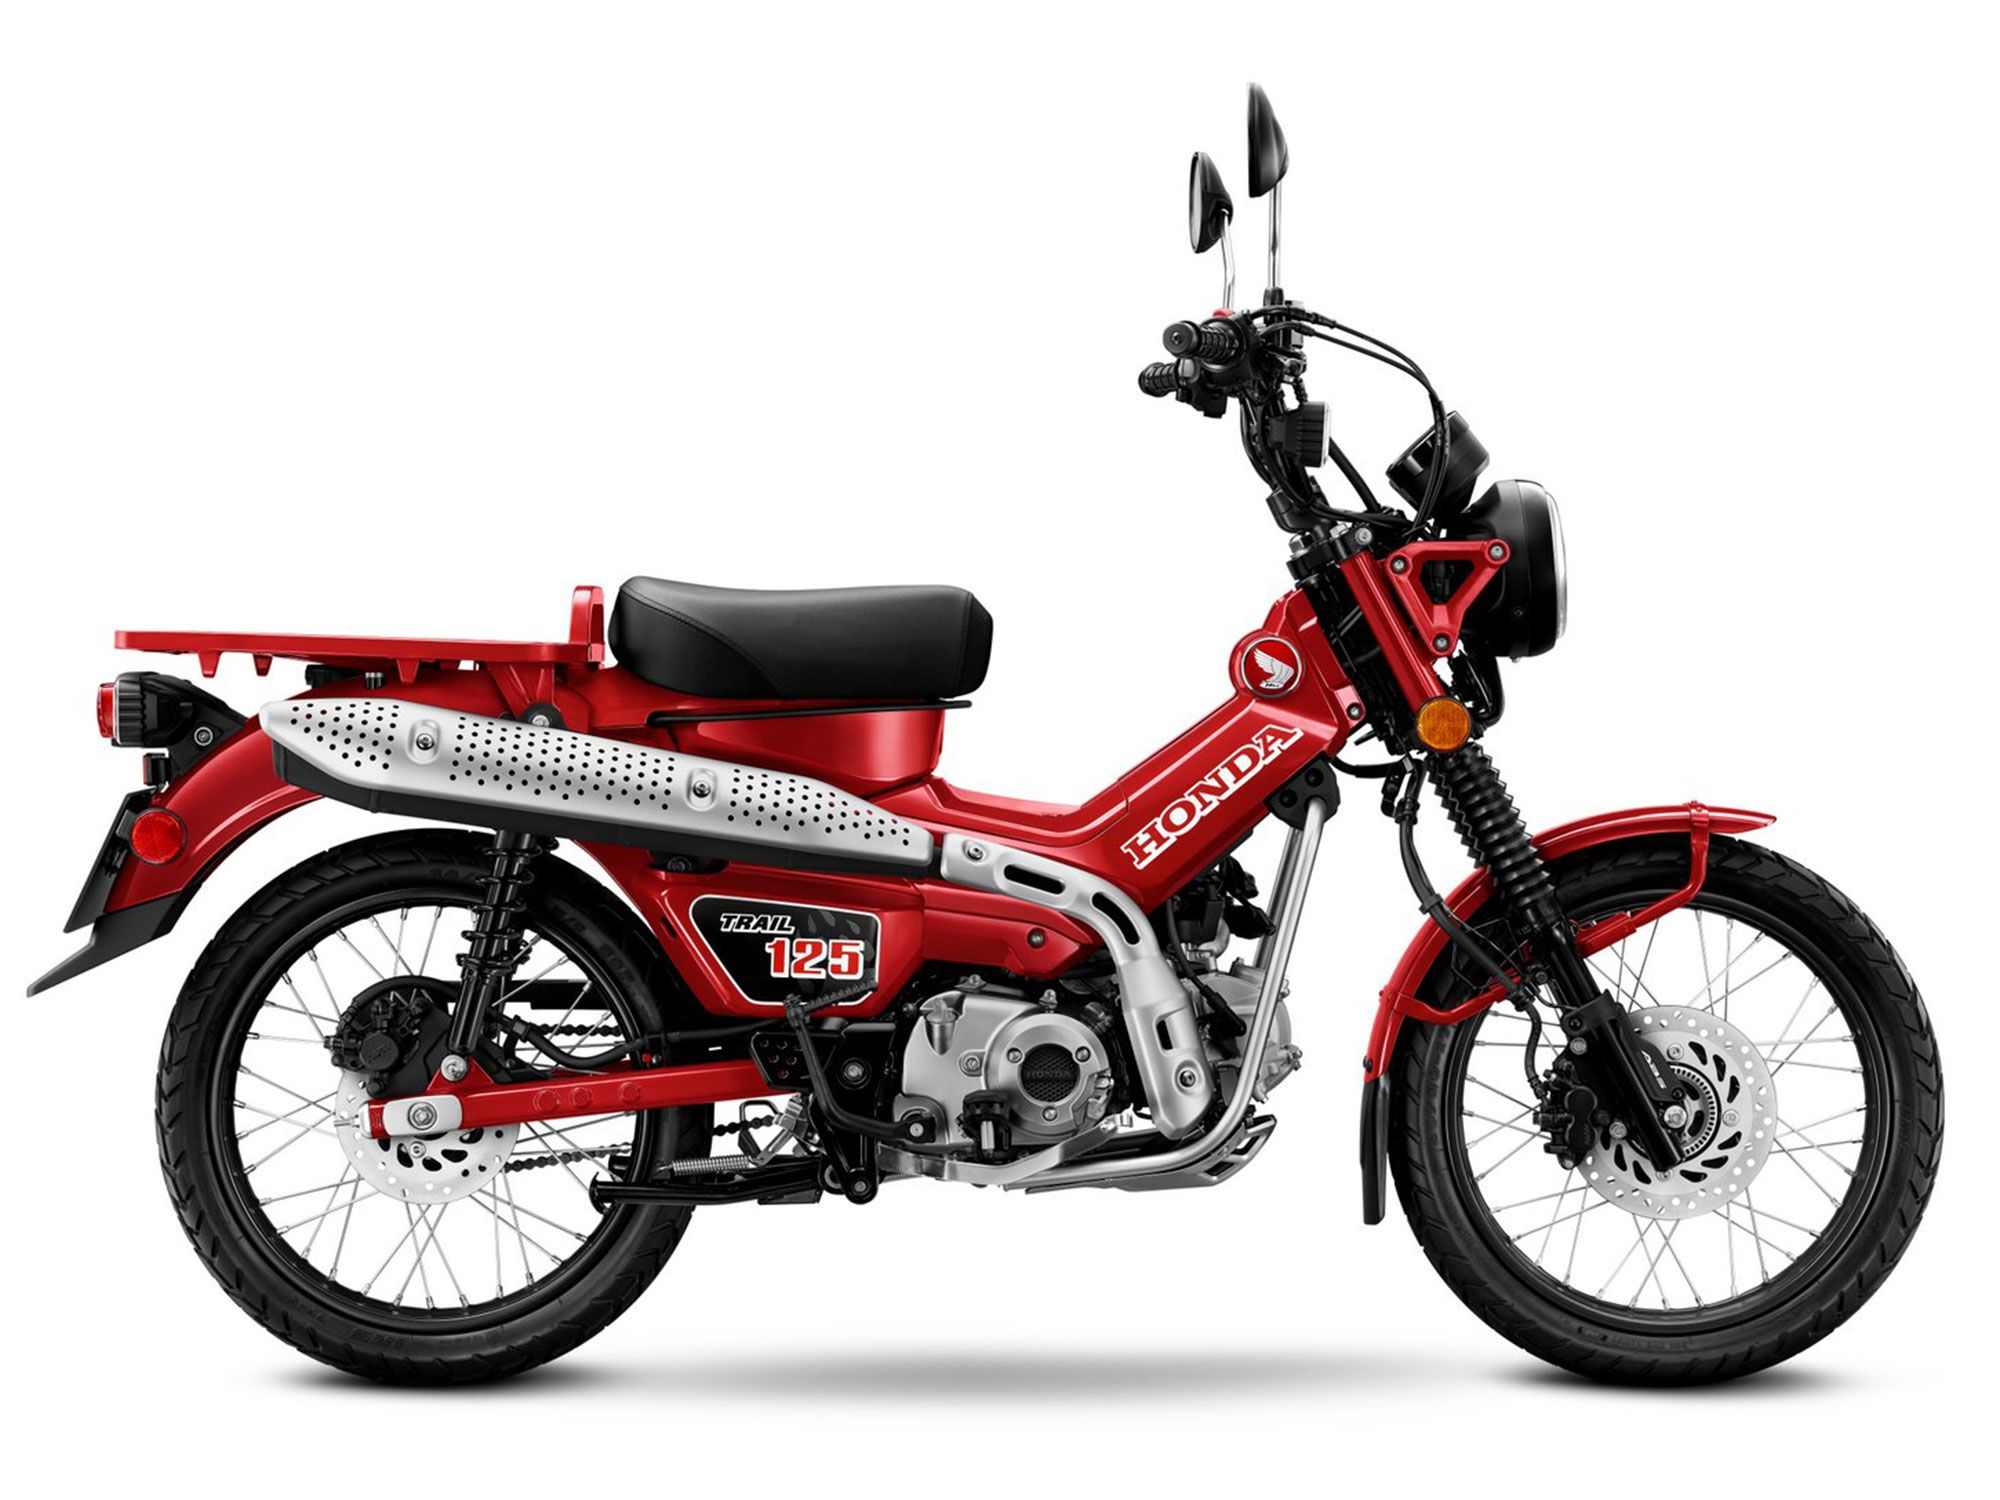 The Trail 125 is based on Honda's Super Cub, but features a more rugged and off-road-capable build.